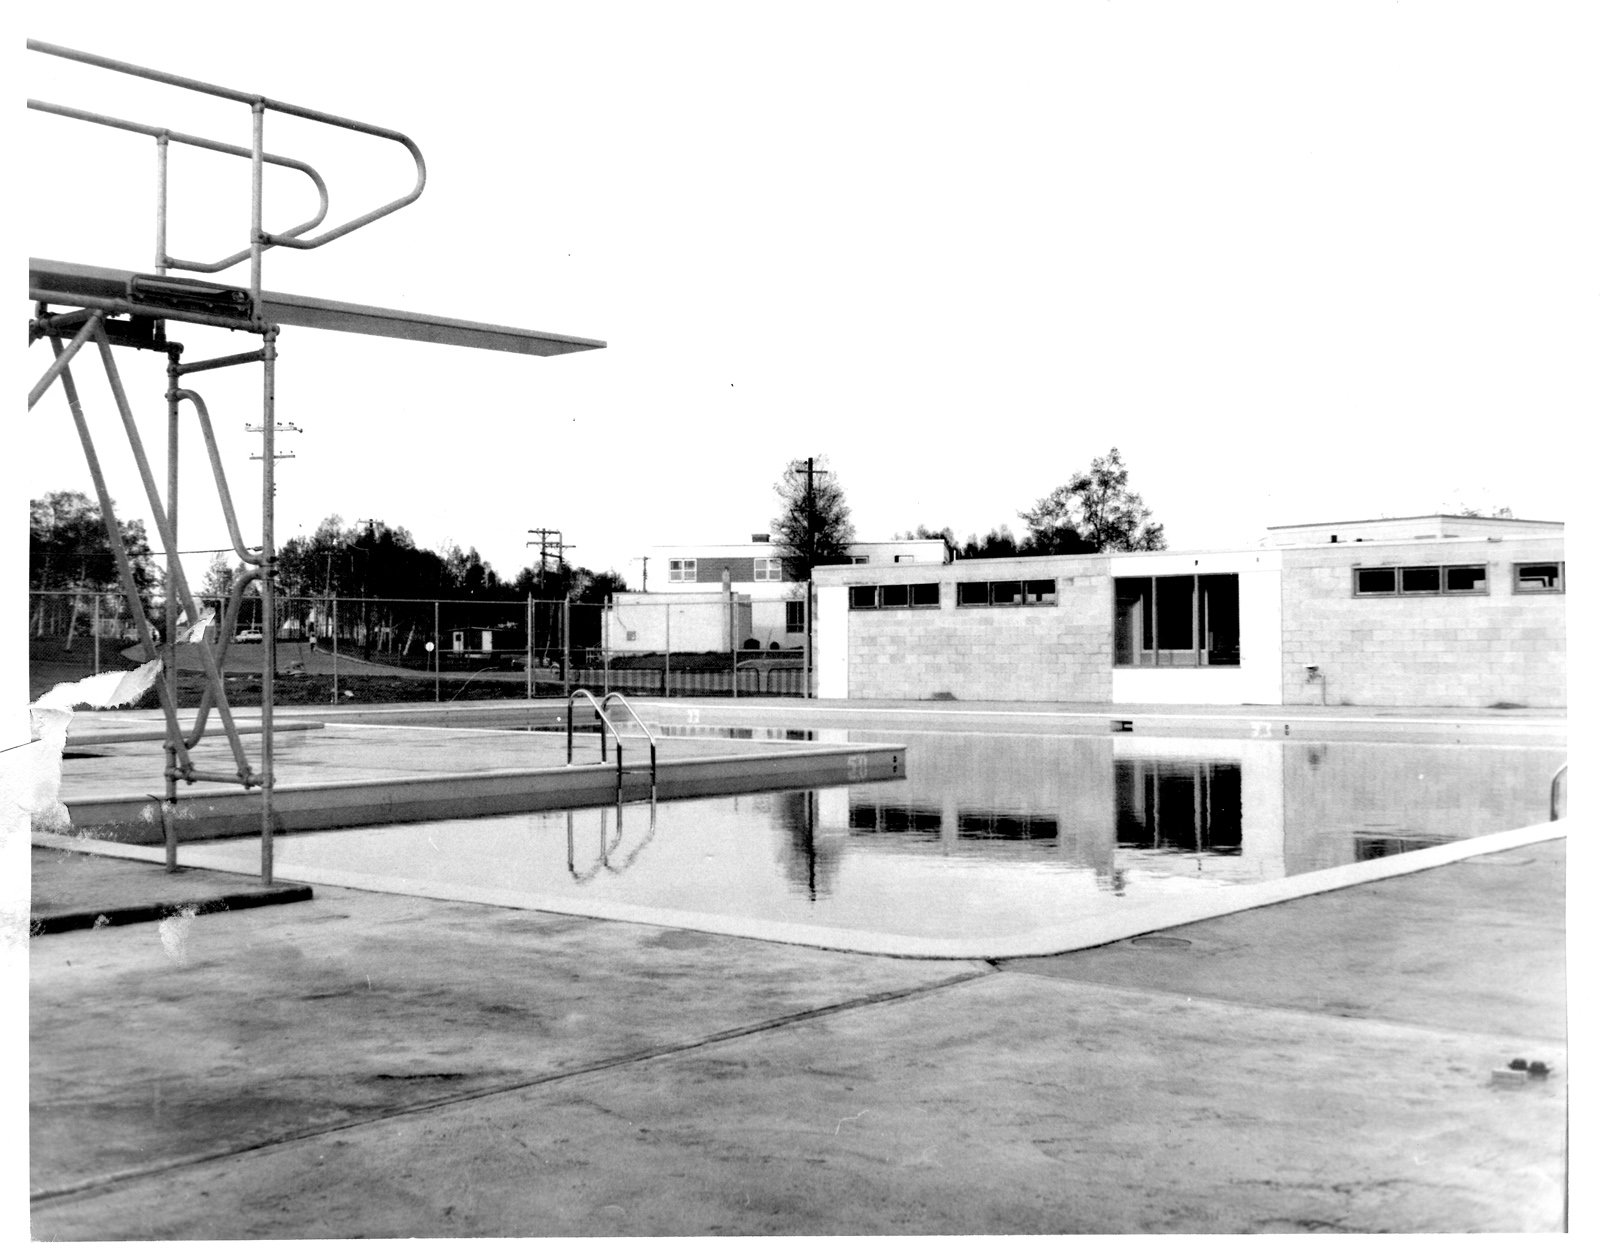 Public Swimming Pool In Terrace Bay From 1963 Terrace Bay Public Library Digital Collections